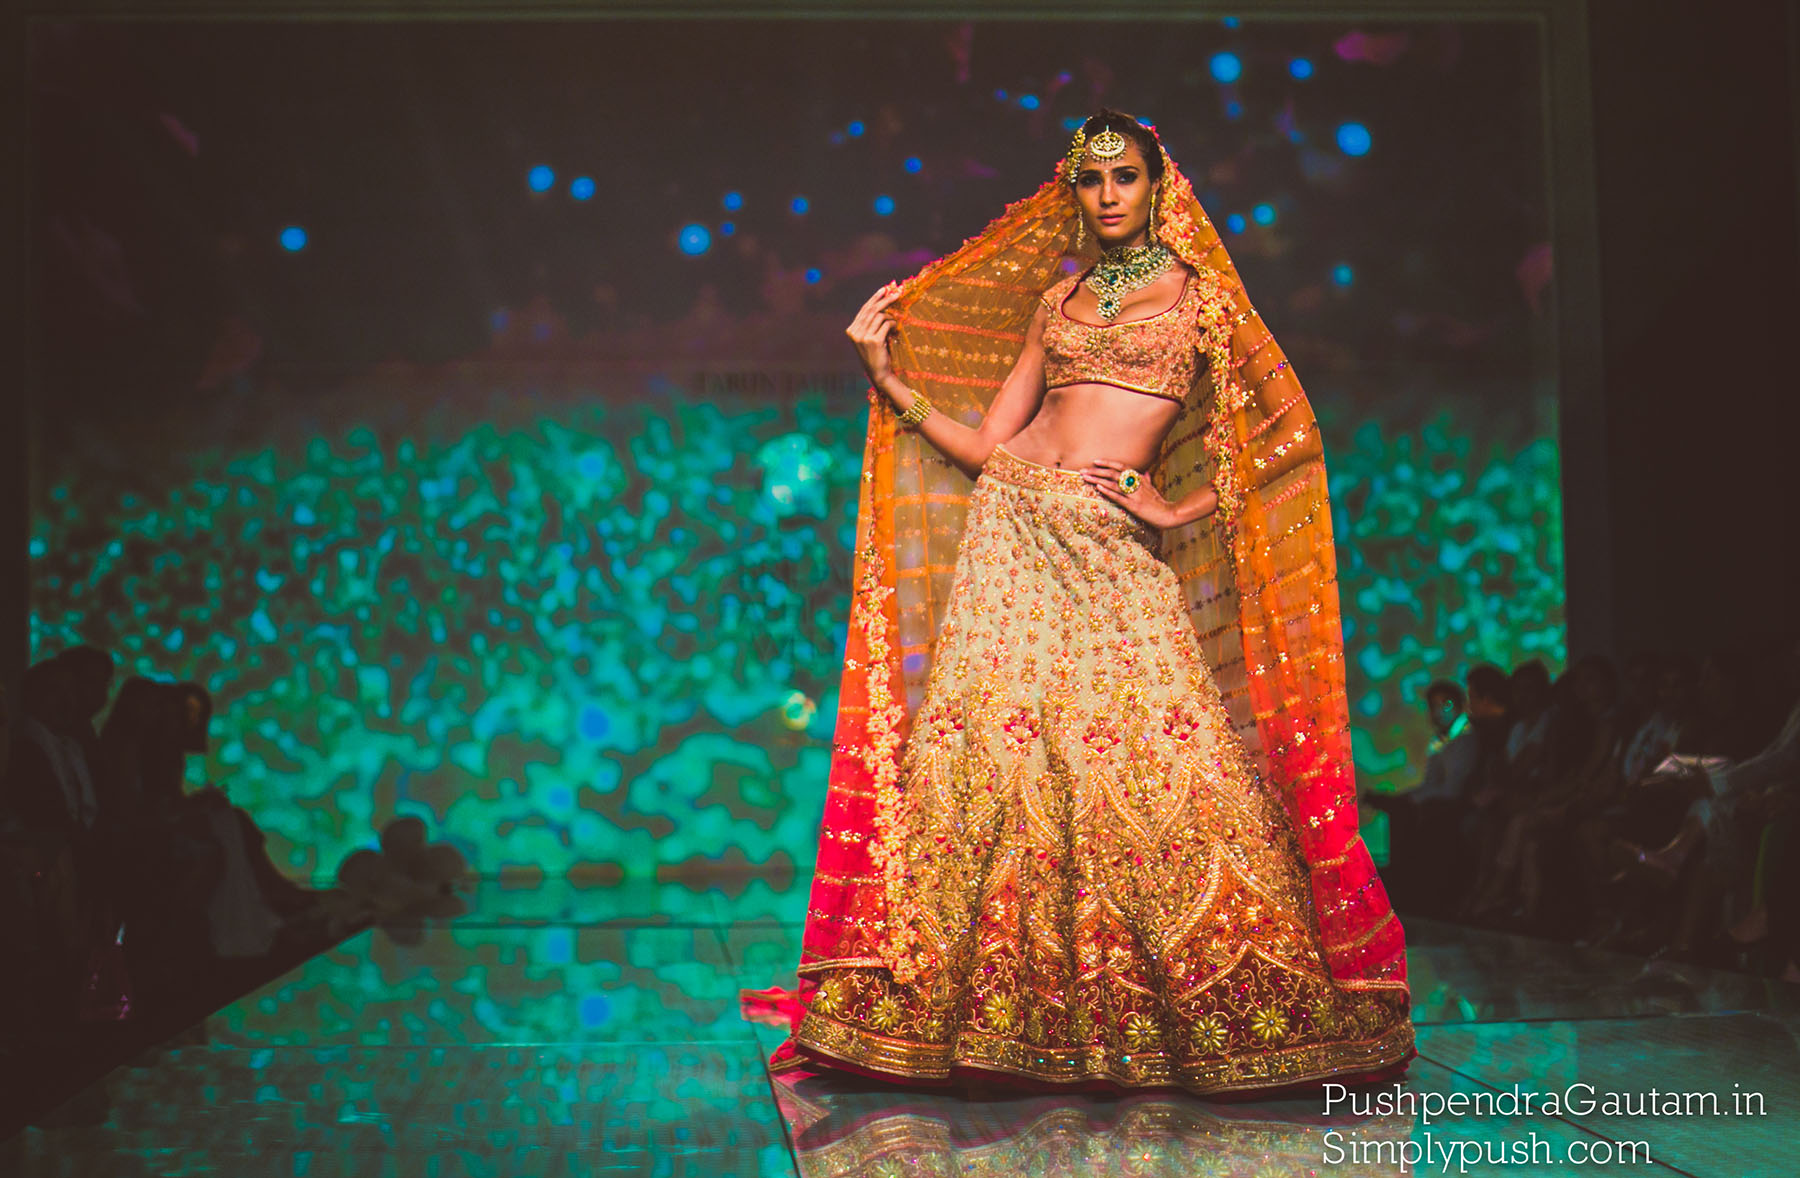 Tarun-tahiliani-rickee-chaterjee-Bridal-show-pics ,India-Bridal-Fashion-Week-blog, india-best-event-fashion-photographer-pics-pushpendra-gautam